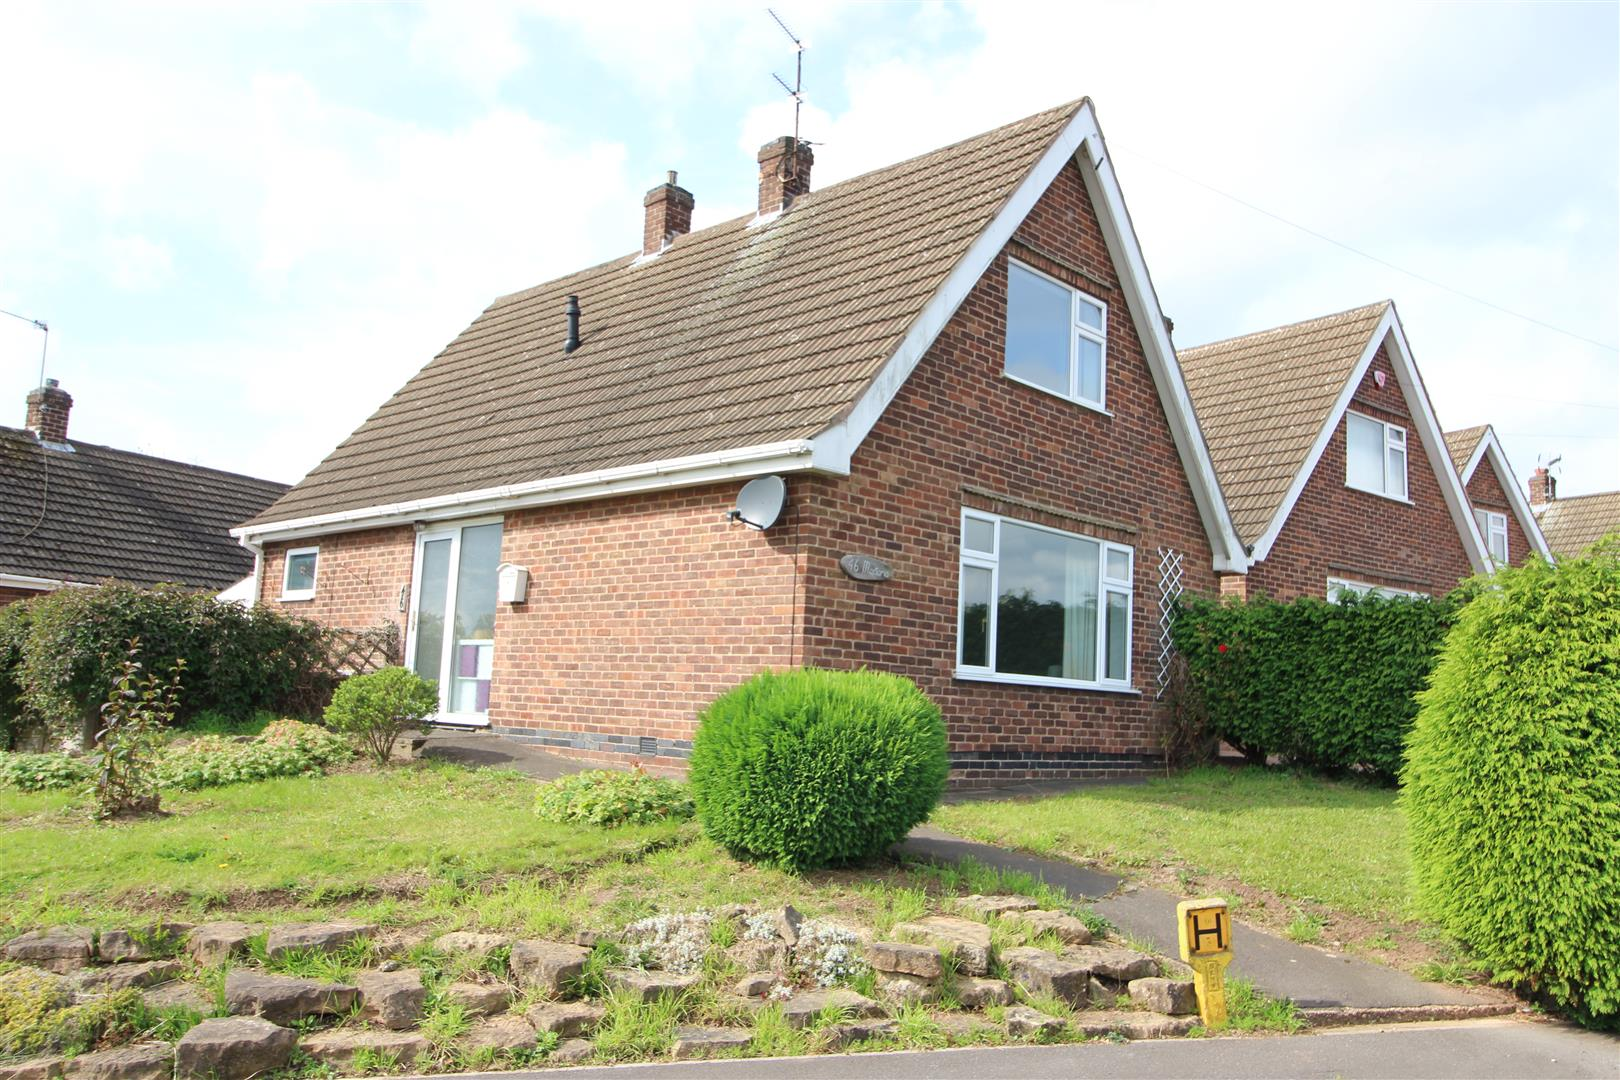 3 Bedrooms Detached Bungalow for sale in Blake Road, Stapleford, Nottingham